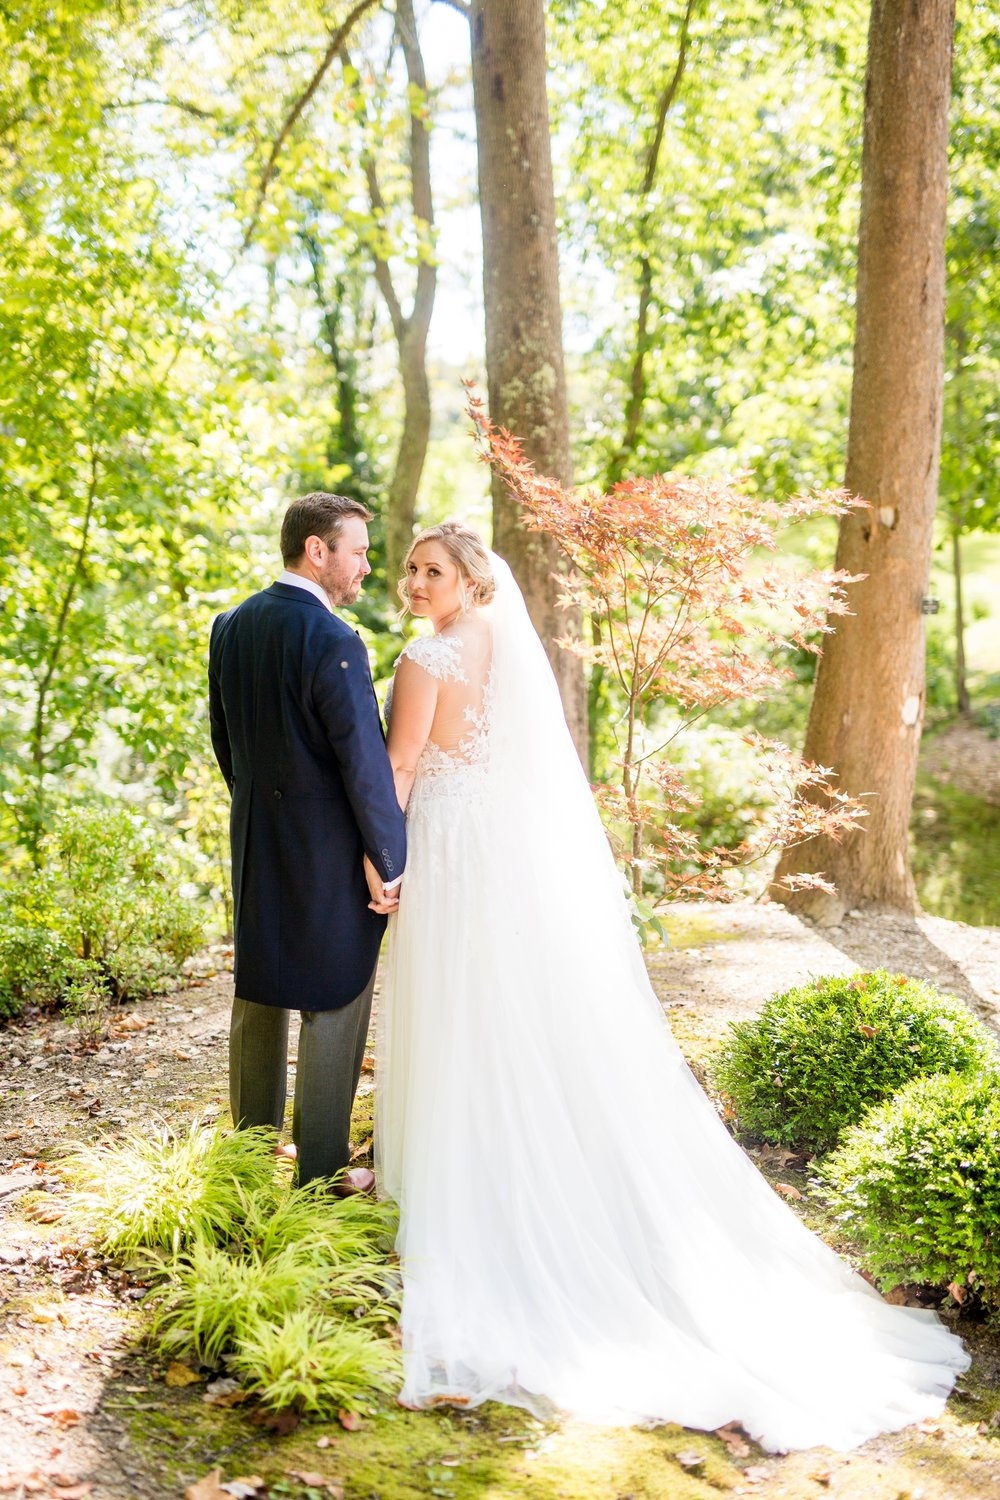 pittsburgh botanic garden wedding photos, pittsburgh wedding venues, best locations for photoshoot in pittsburgh, the best pittsburgh wedding photographers, pittsburgh botanic garden